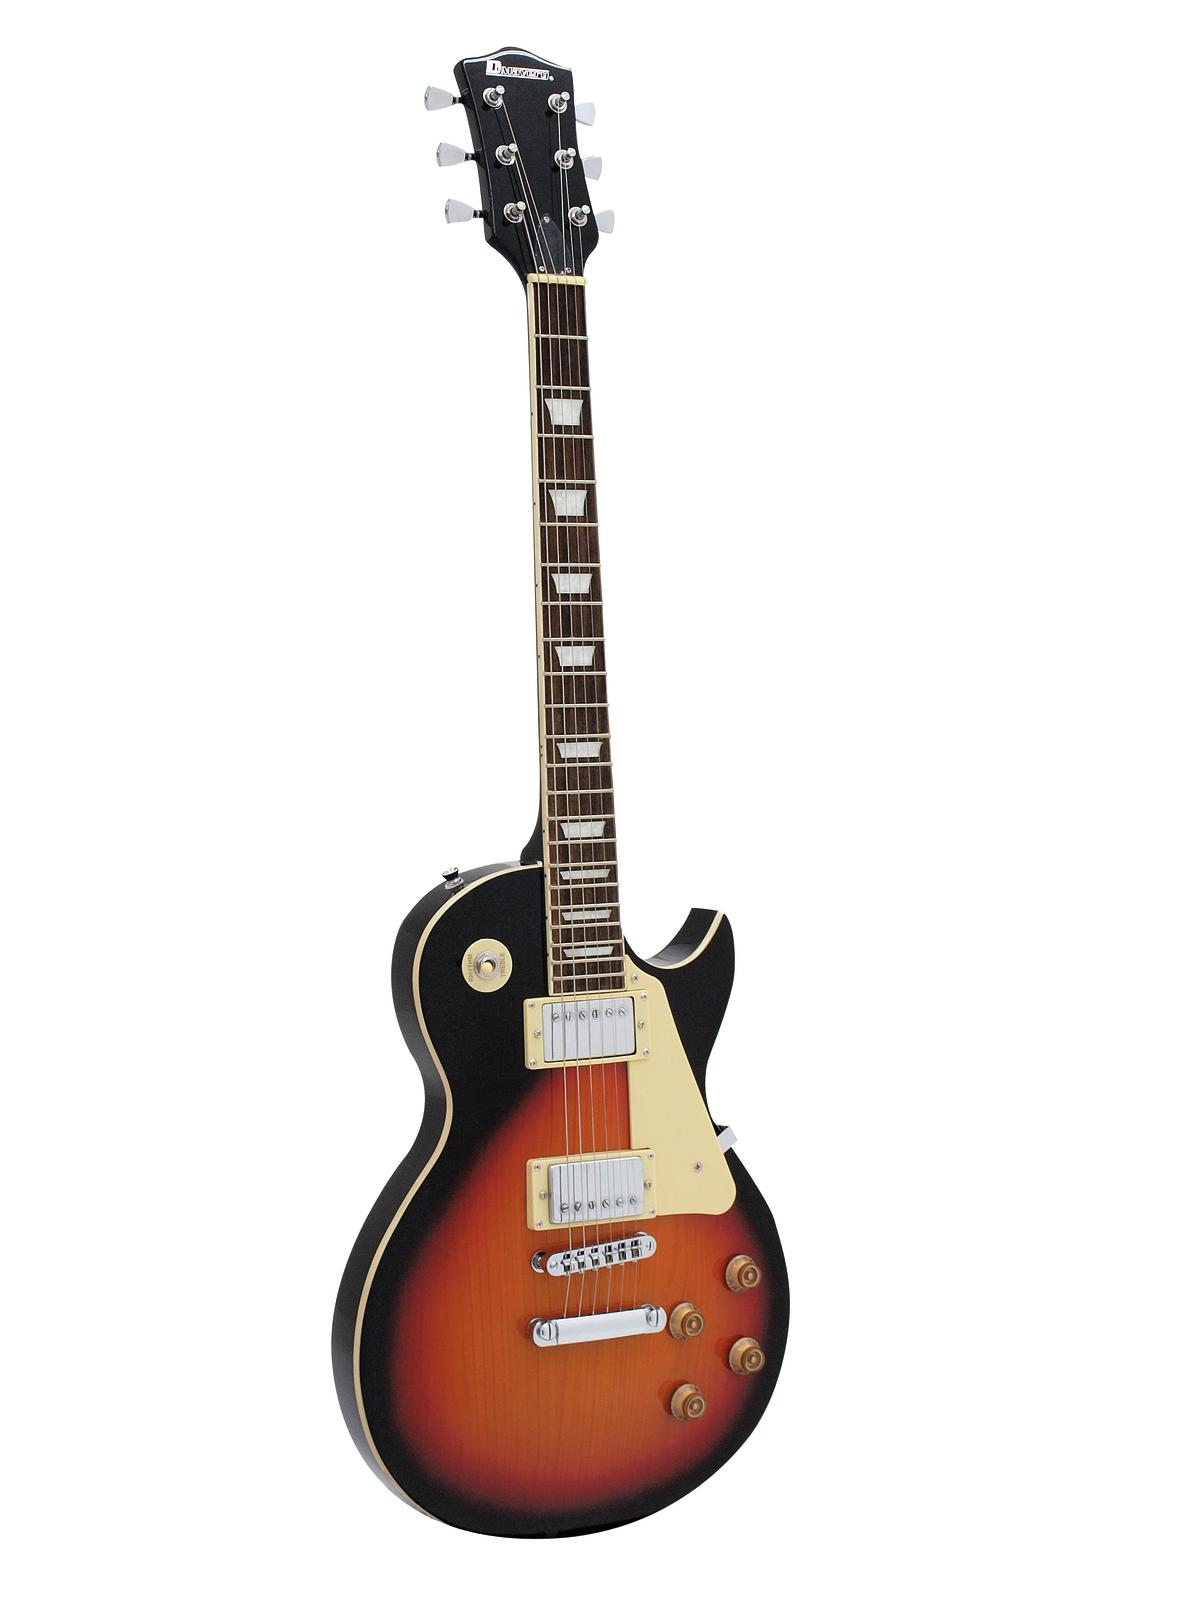 DIMAVERY LP-520 E-Guitar, sunburst